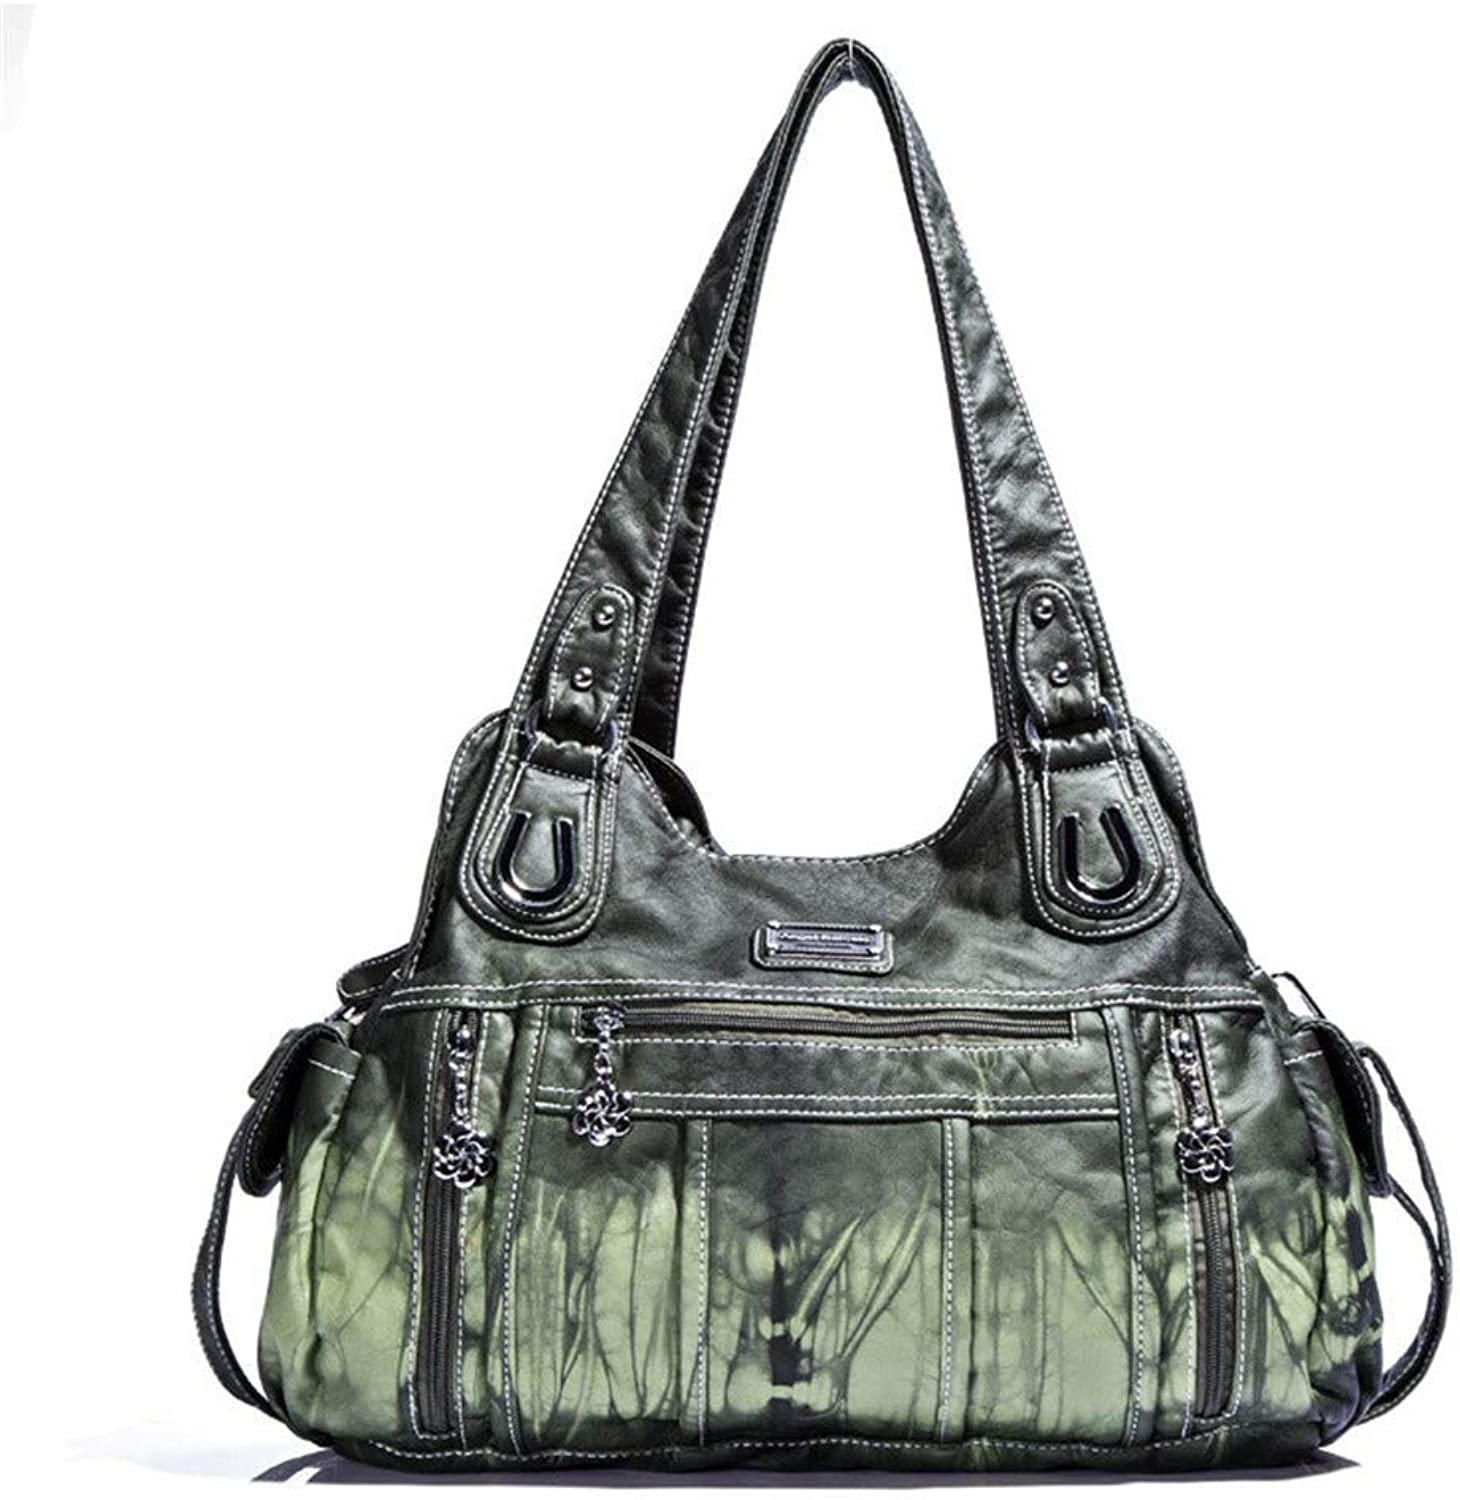 Sturdy New Women's Shoulder Handbag Solid color Fashion Trend Large Capacity Diagonal Package Large Capacity (color   Green)